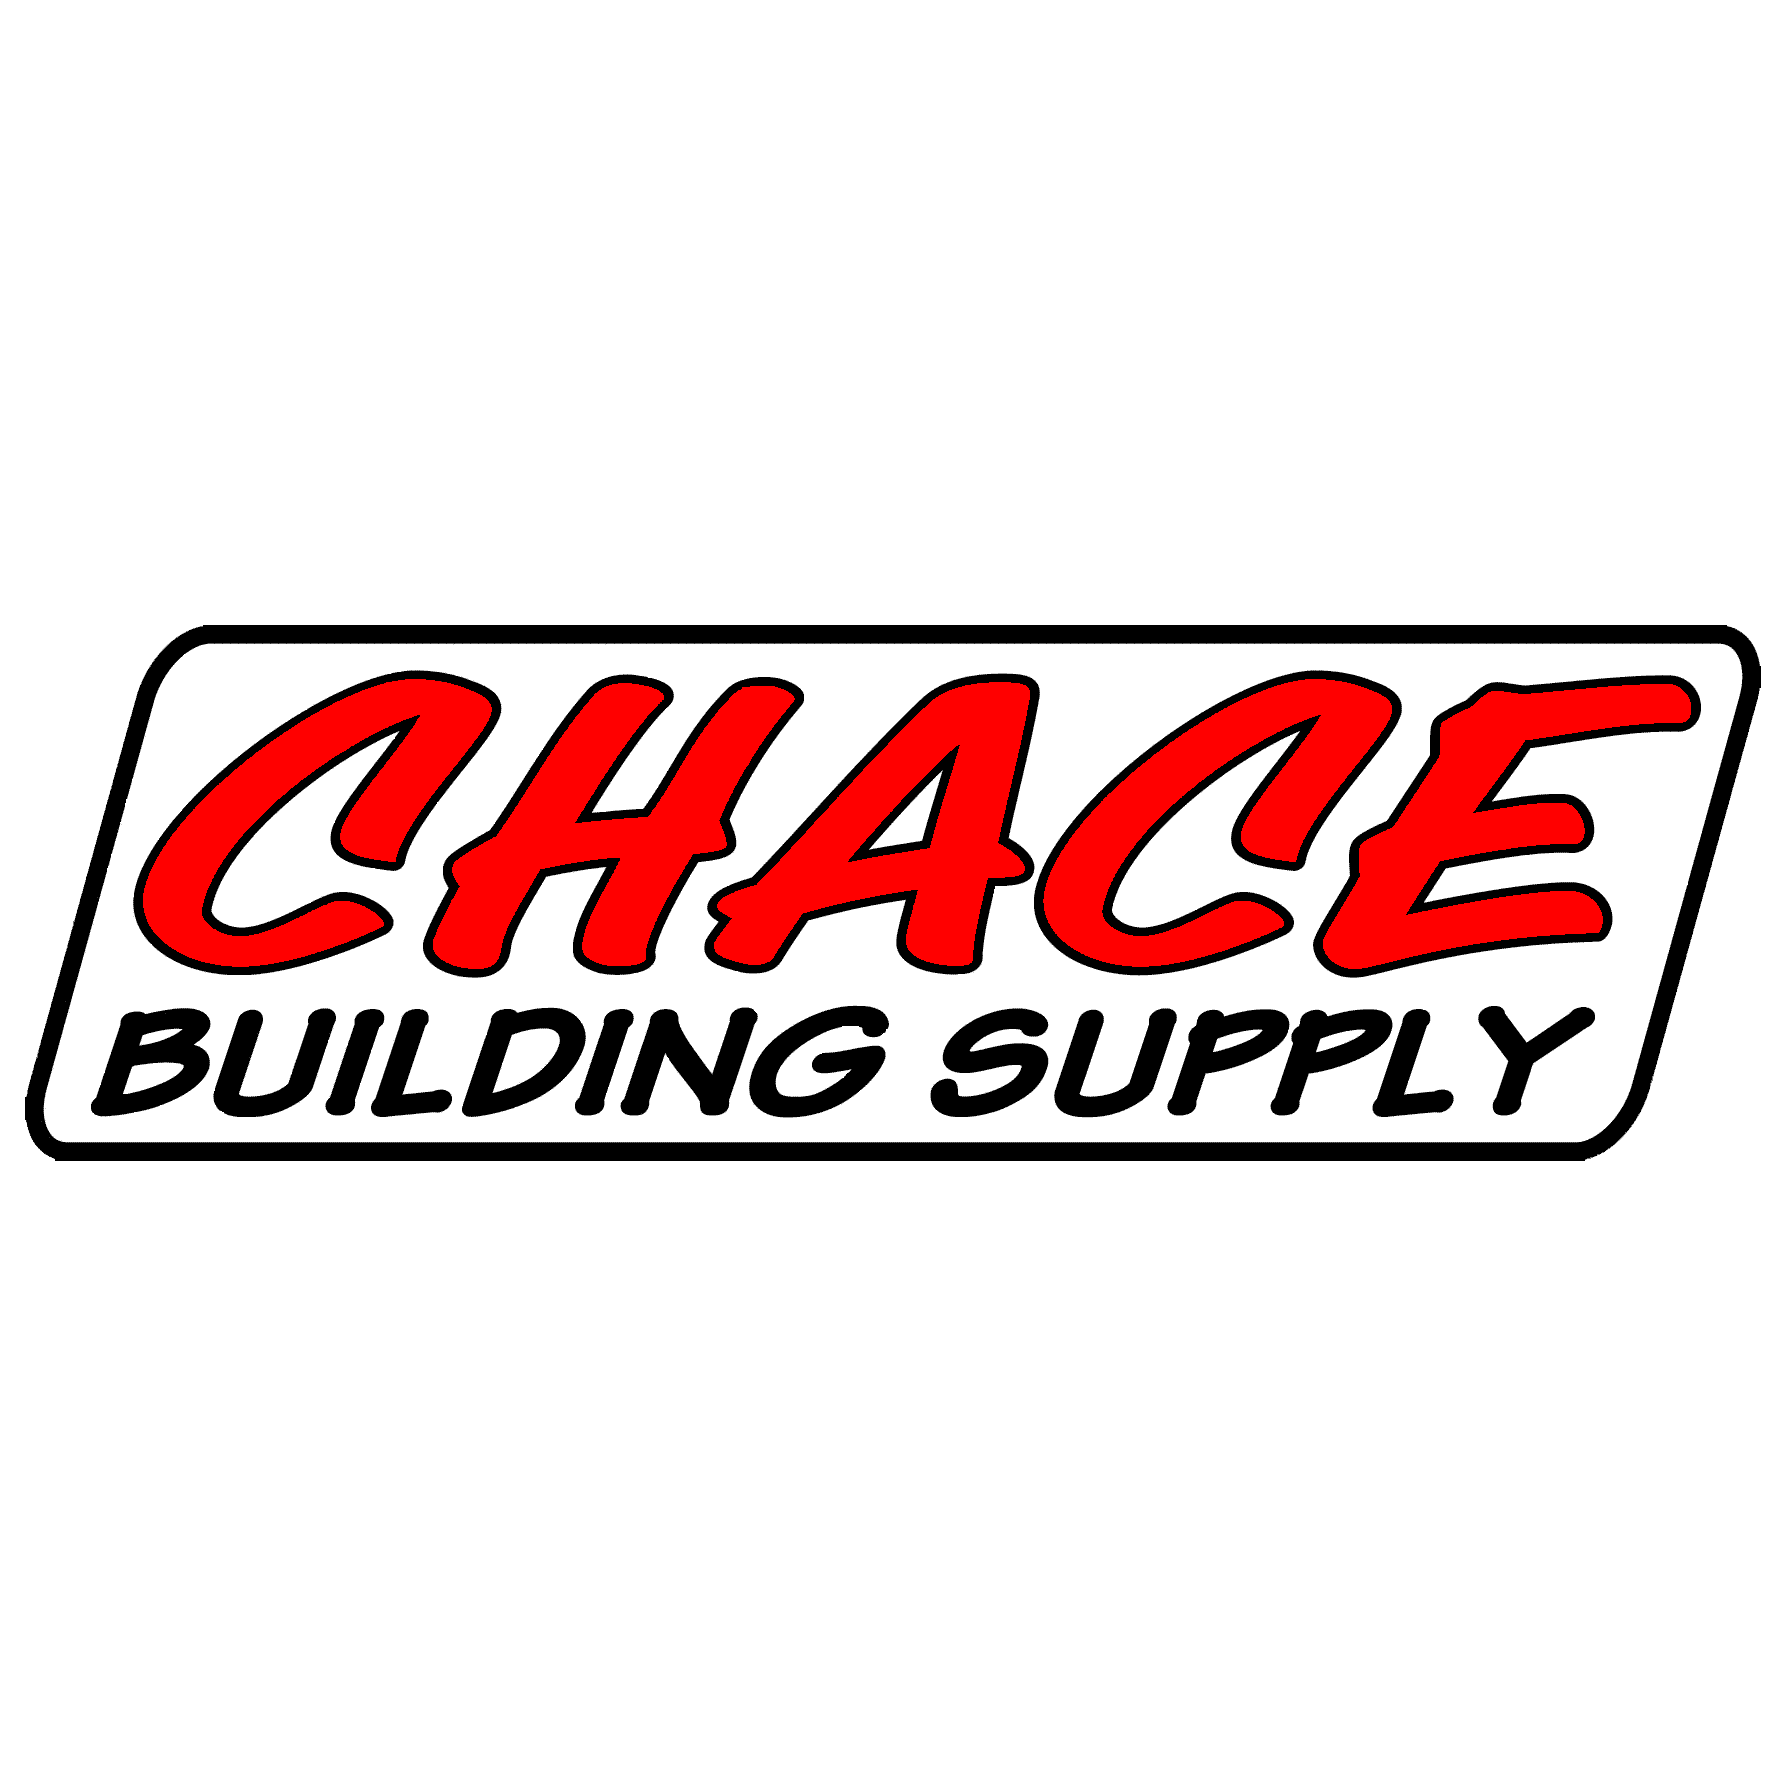 Chace Building Supply - Foxborough, MA - Home Centers